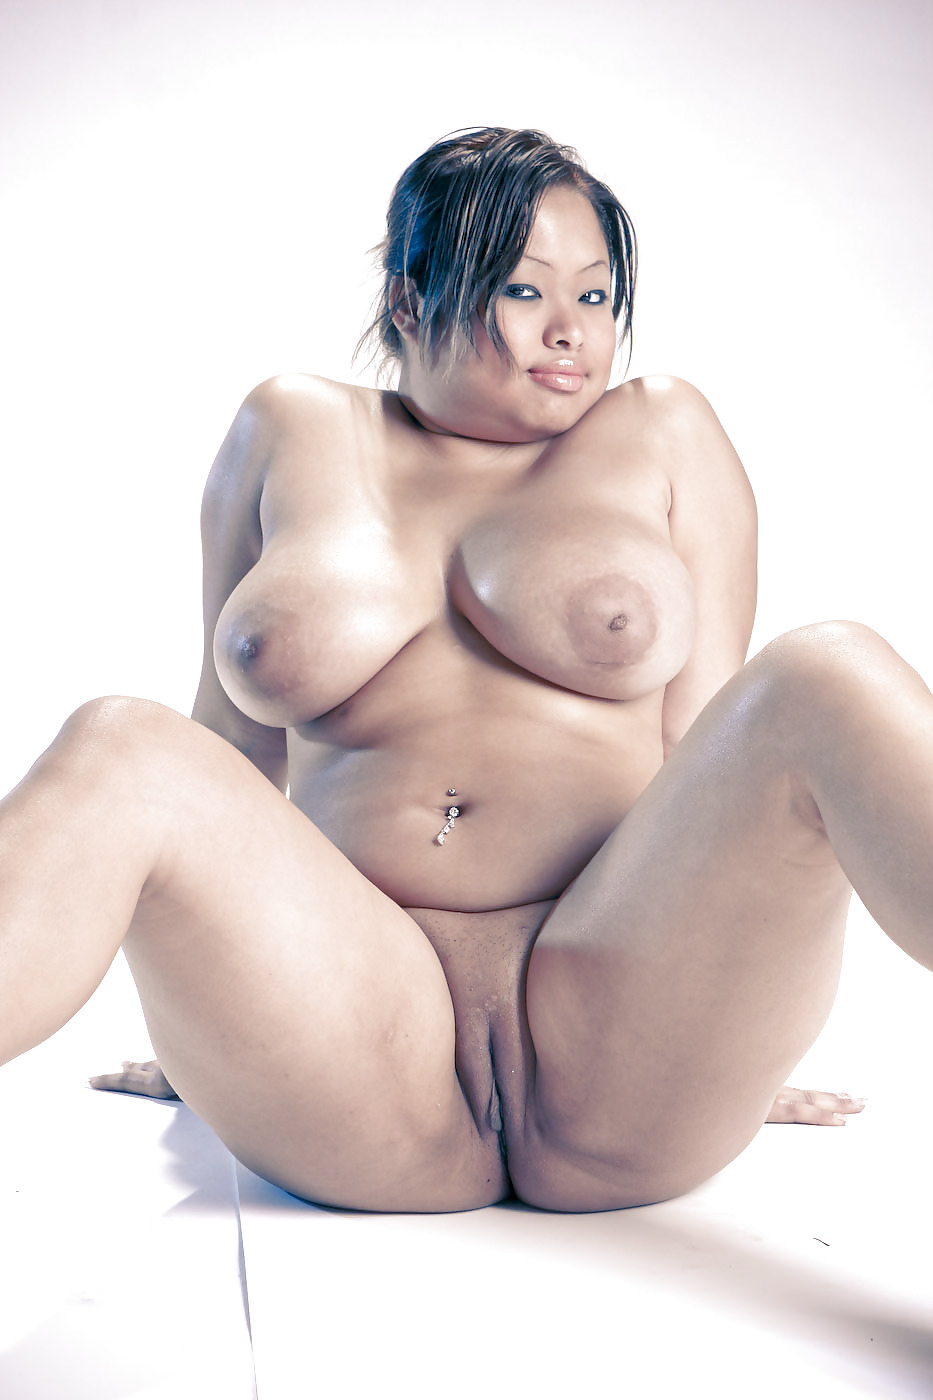 Fat chinese girls naked #10